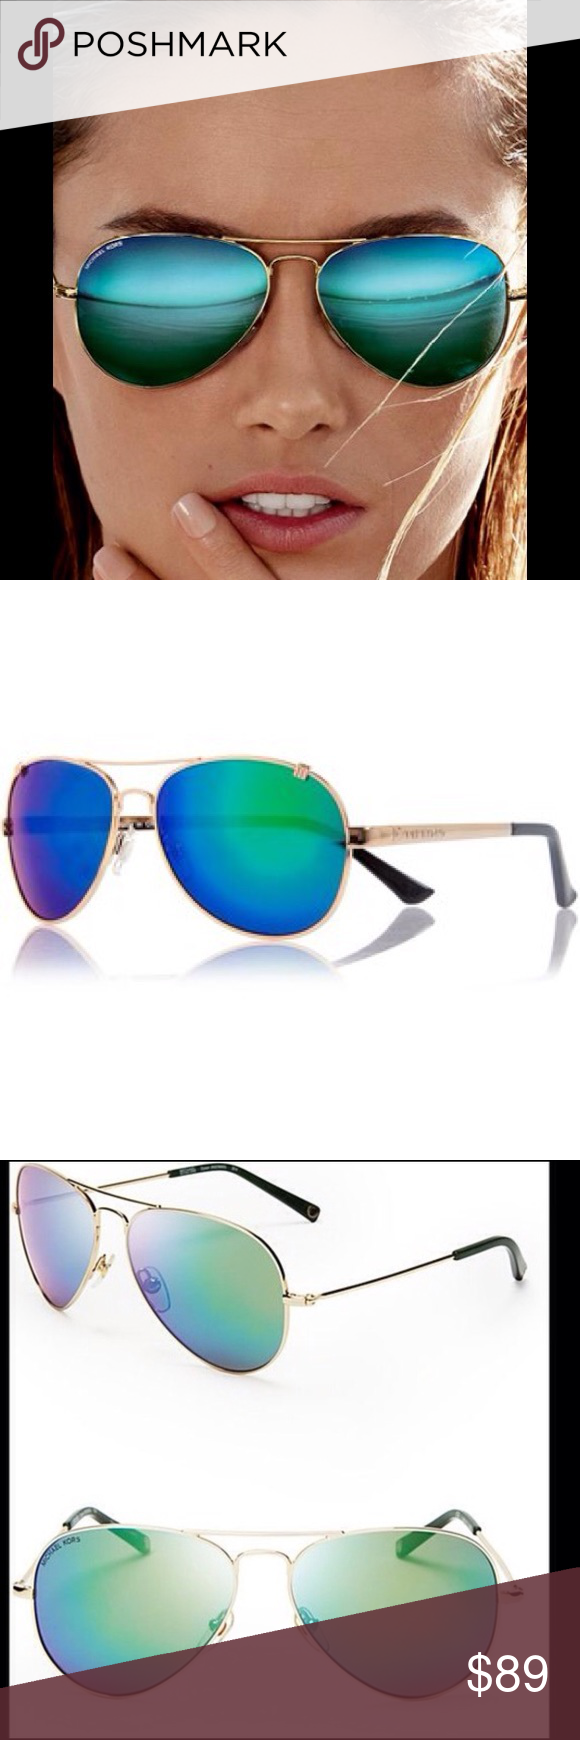 69ca19692 Michael Kors Dylan Aviator Sunglasses These are the popular MK Aviator  glasses with a high quality